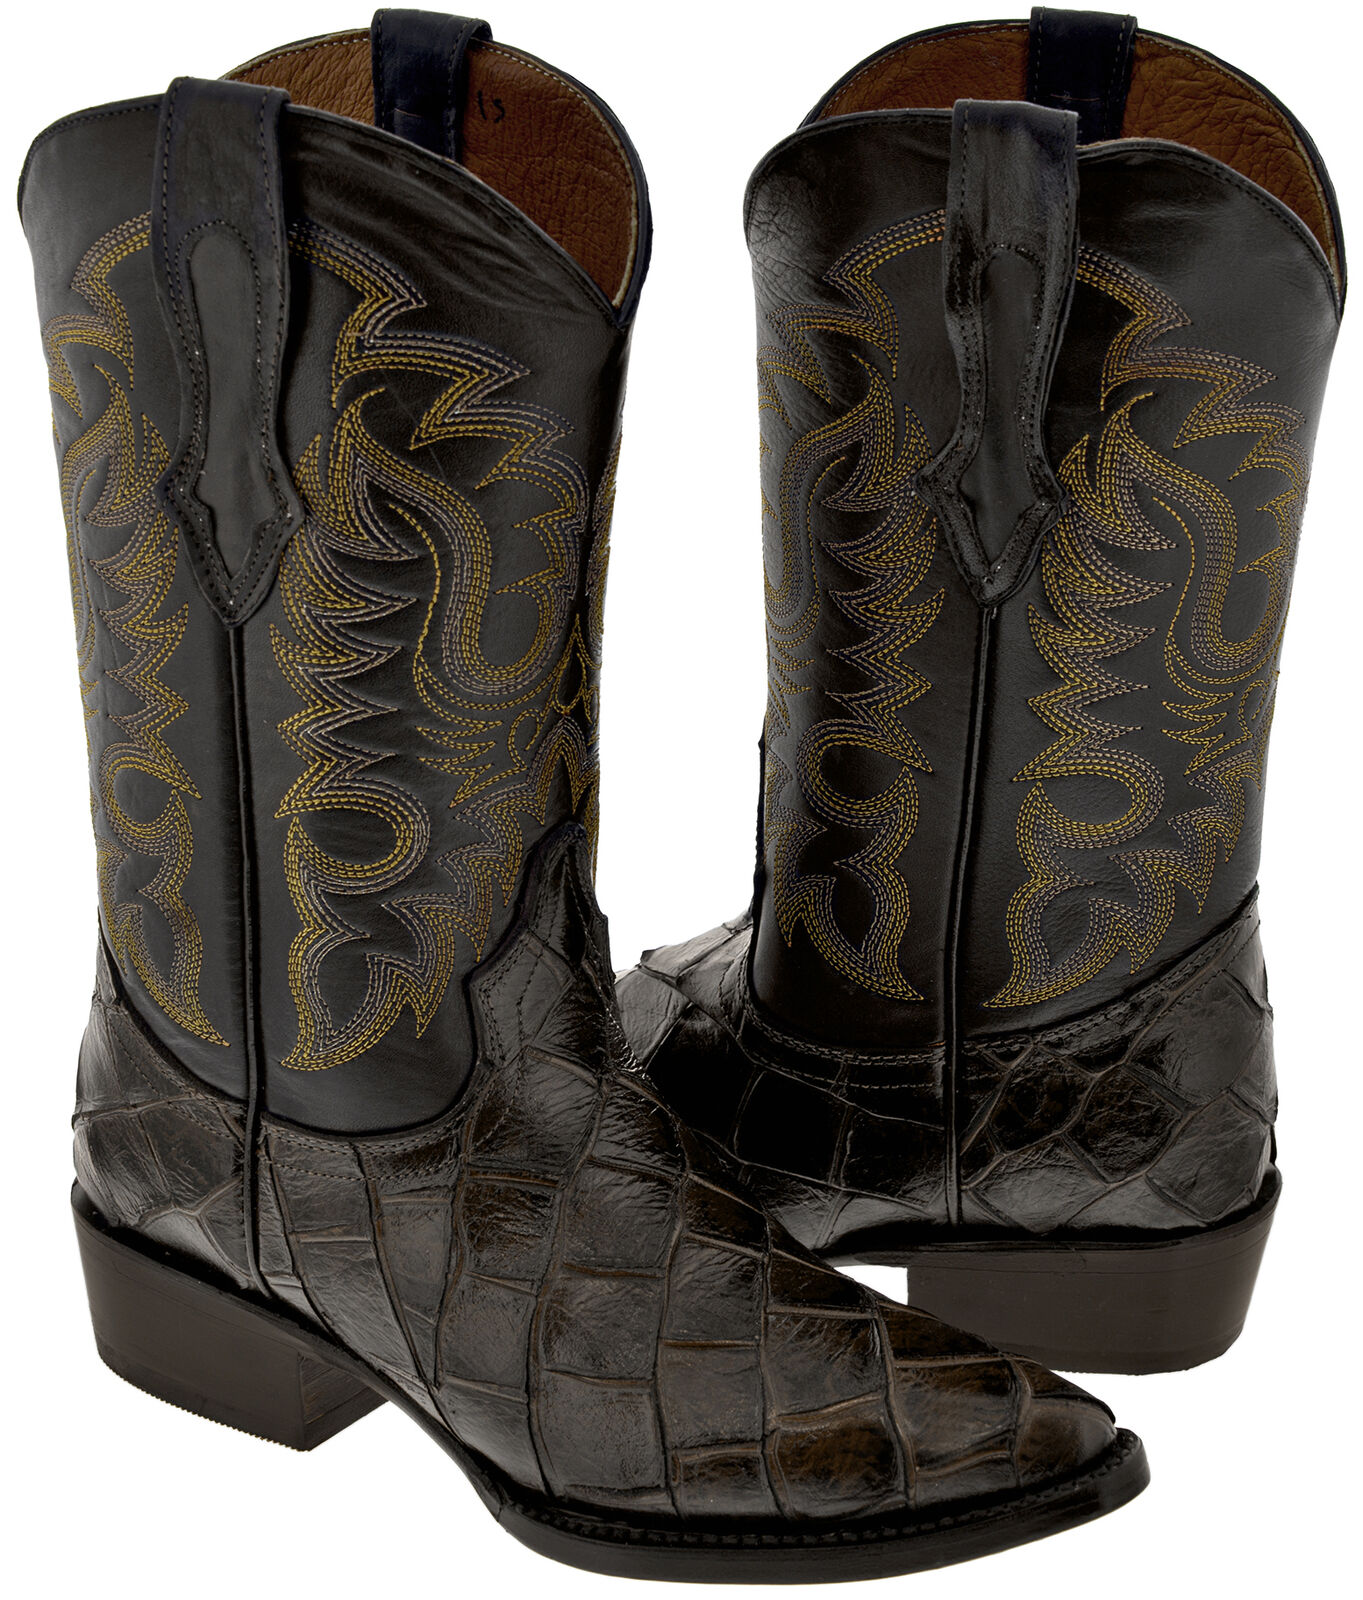 Mens Brown Pirarucu Fish Print Leather Cowboy Boots J Toe Western Rodeo Riding